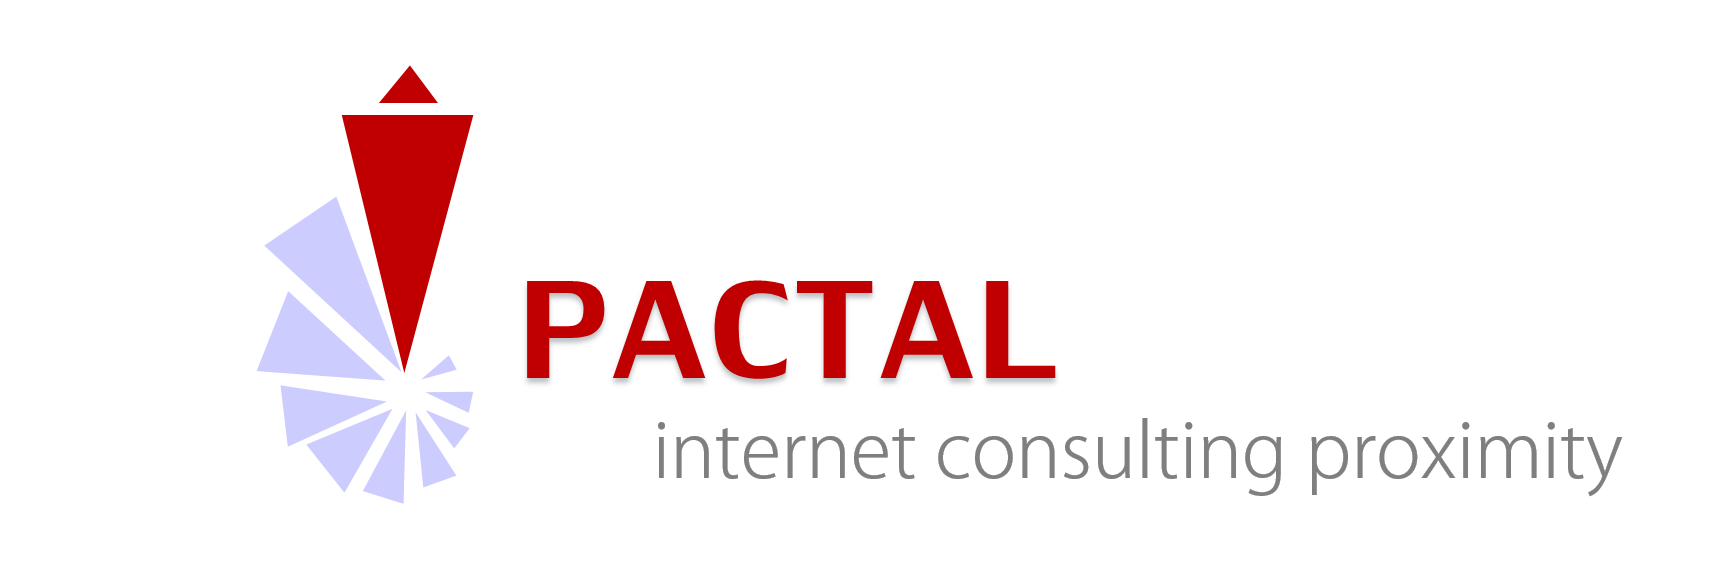 Pactal internet consulting proximity